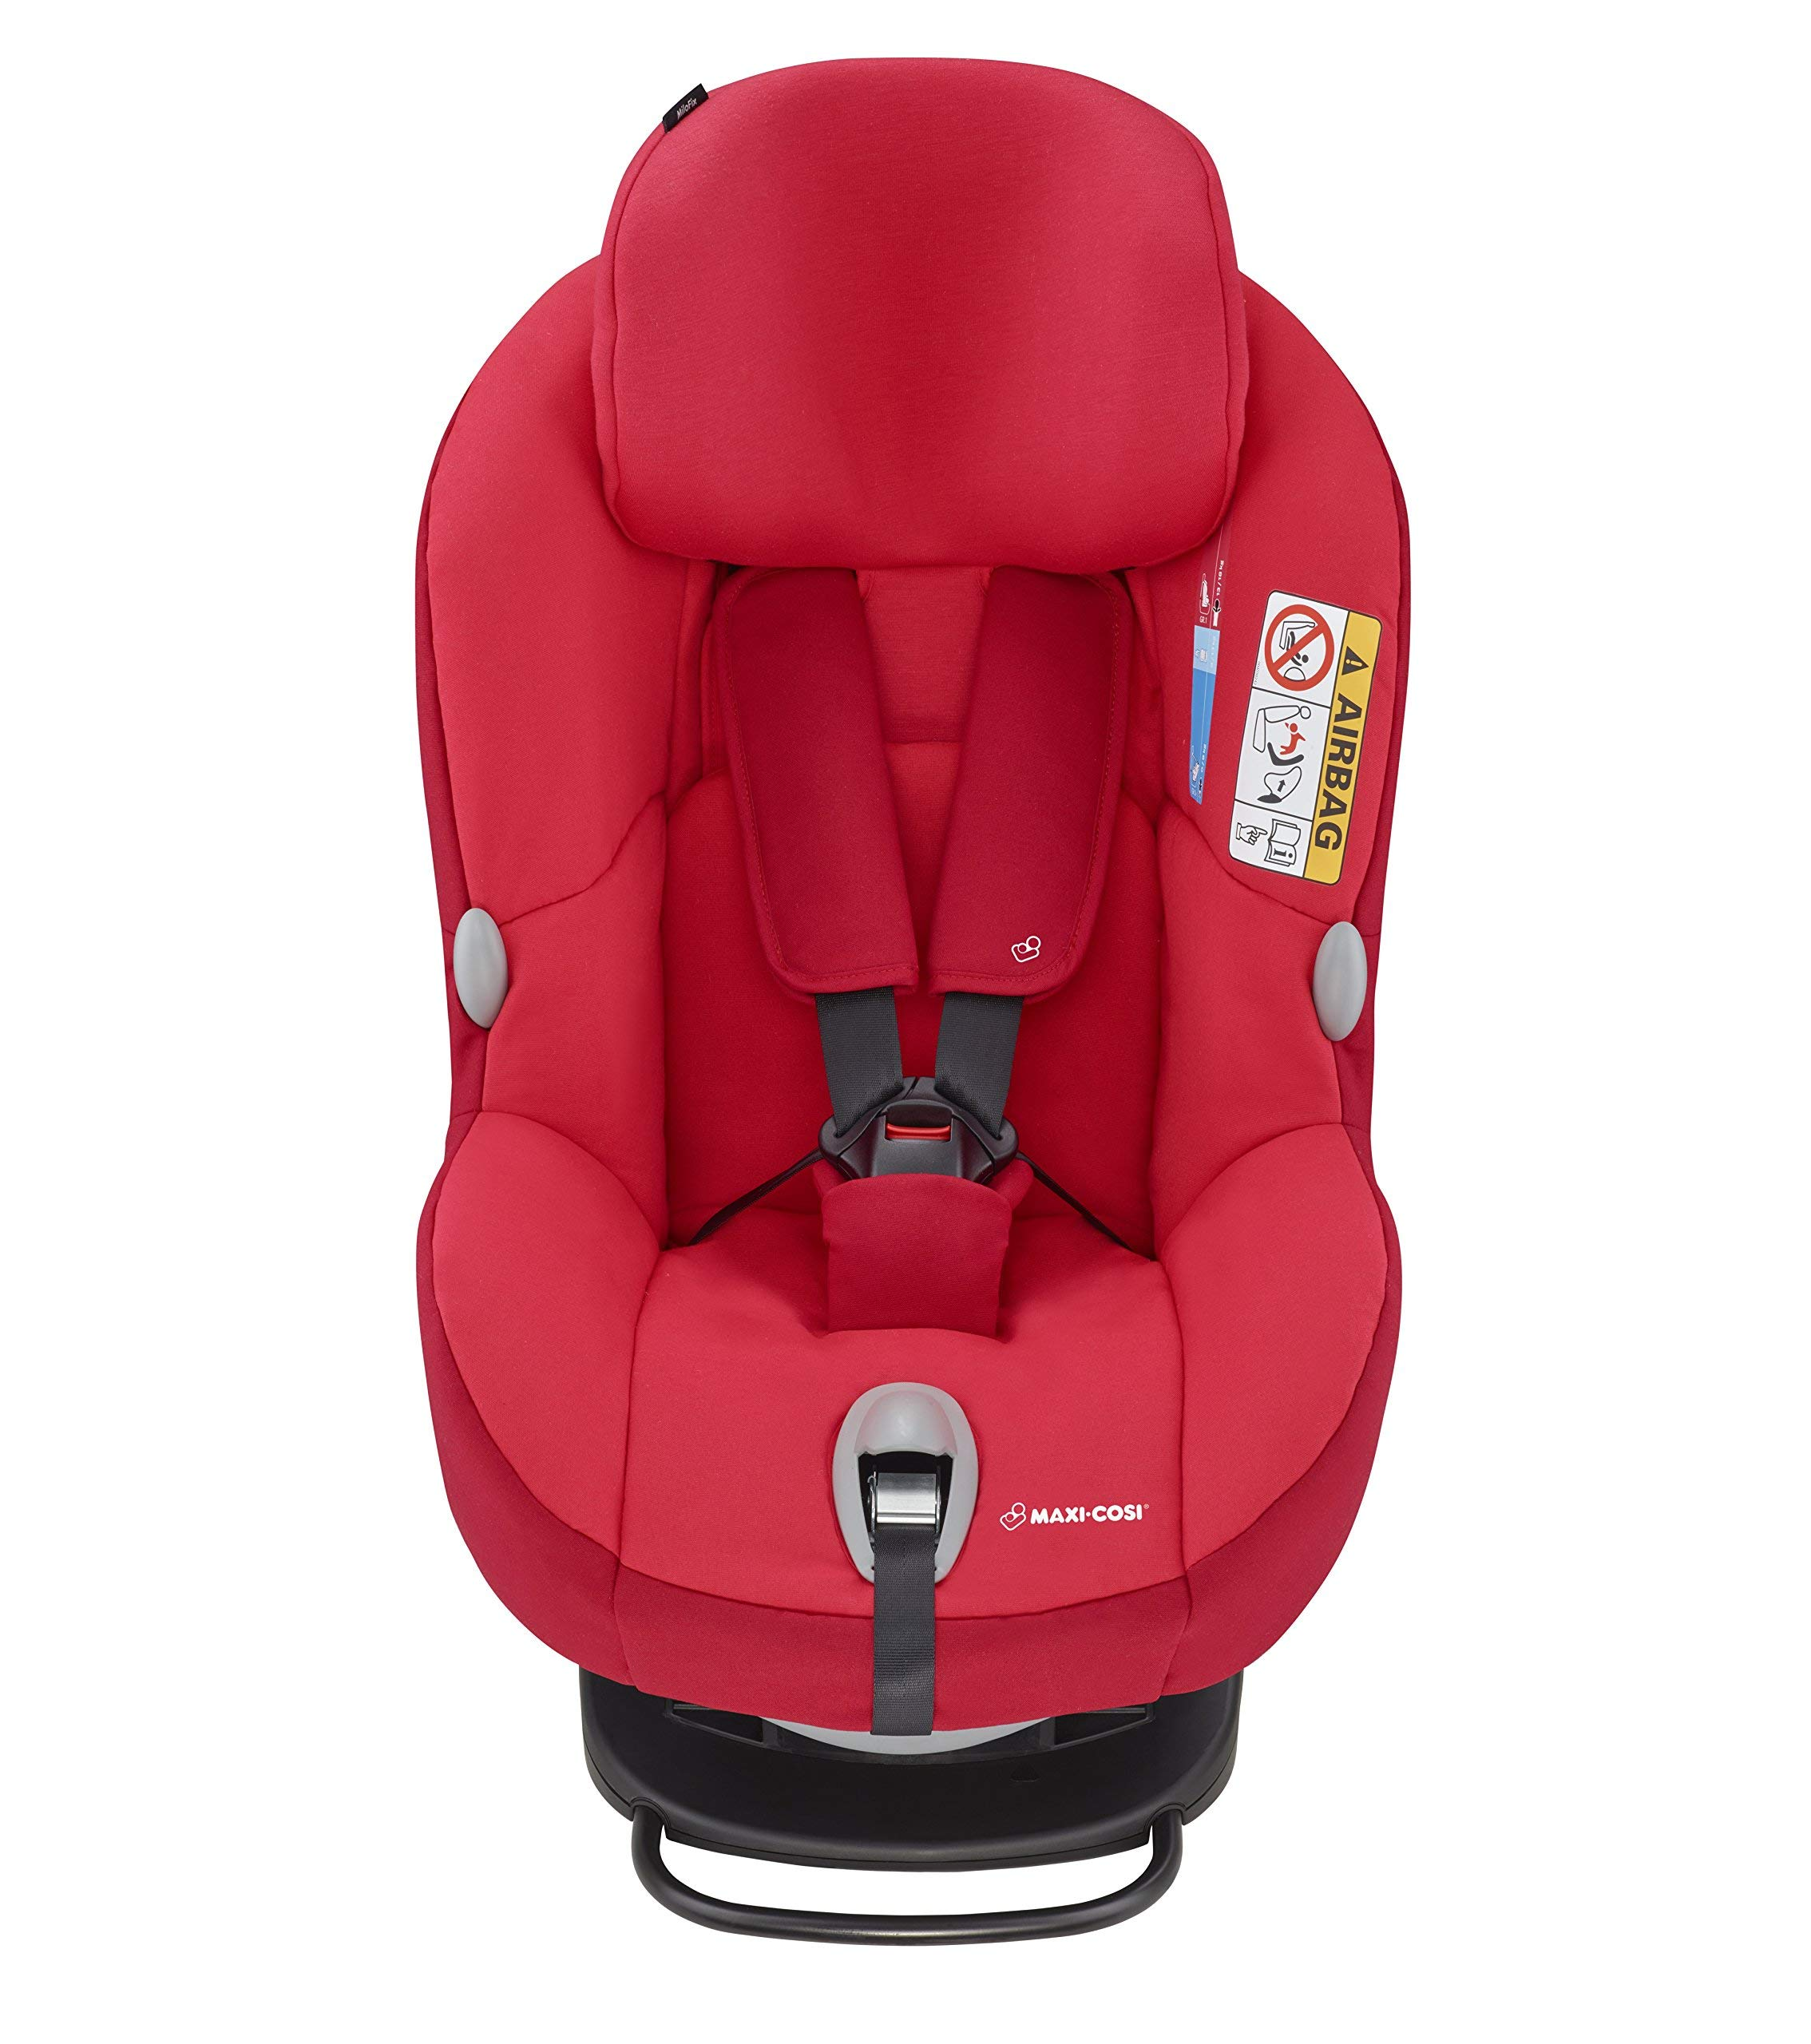 Maxi-Cosi MiloFix ISOFIX Combination Car Seat, Group 0+/1 car seat, Rear and Forward-facing, 0-4 years, 0-18 kg, Vivid Red Maxi-Cosi Rear and forward facing group 0+/1 car seat, suitable from birth to 18 kg (birth to 4 years) i-Size car seat, extended rearward-facing travel up until 18 months Padded seat and angled base provide additional leg room in rear-facing position 2